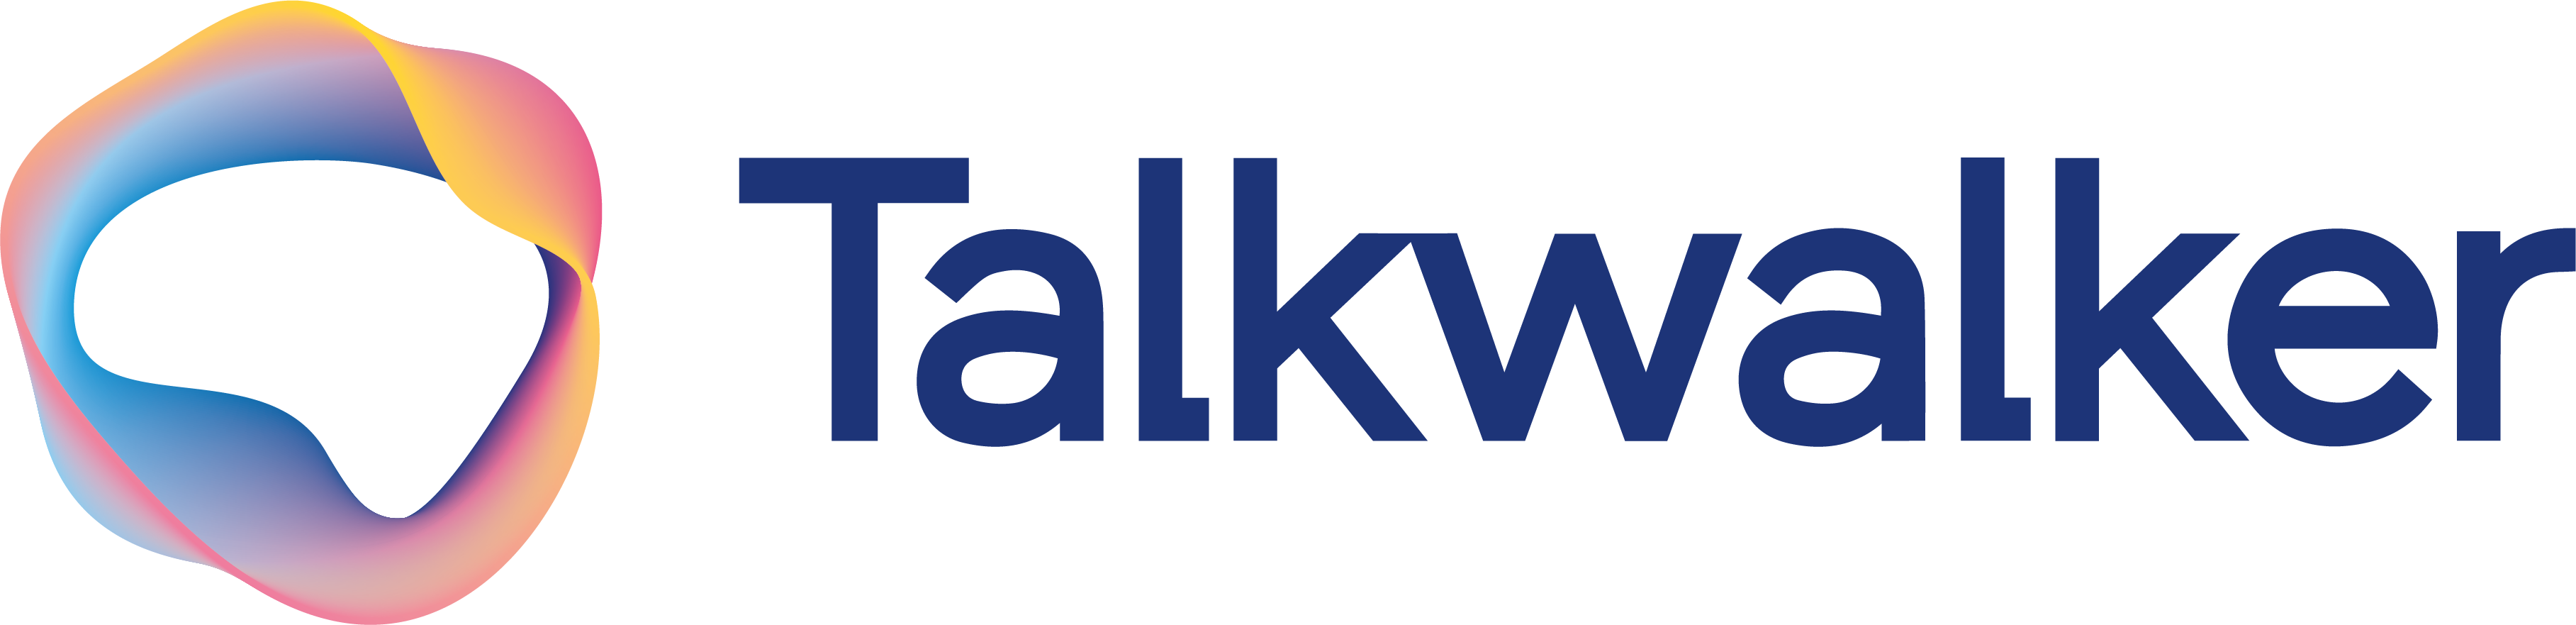 Talkwalker Logo_Full_Blue